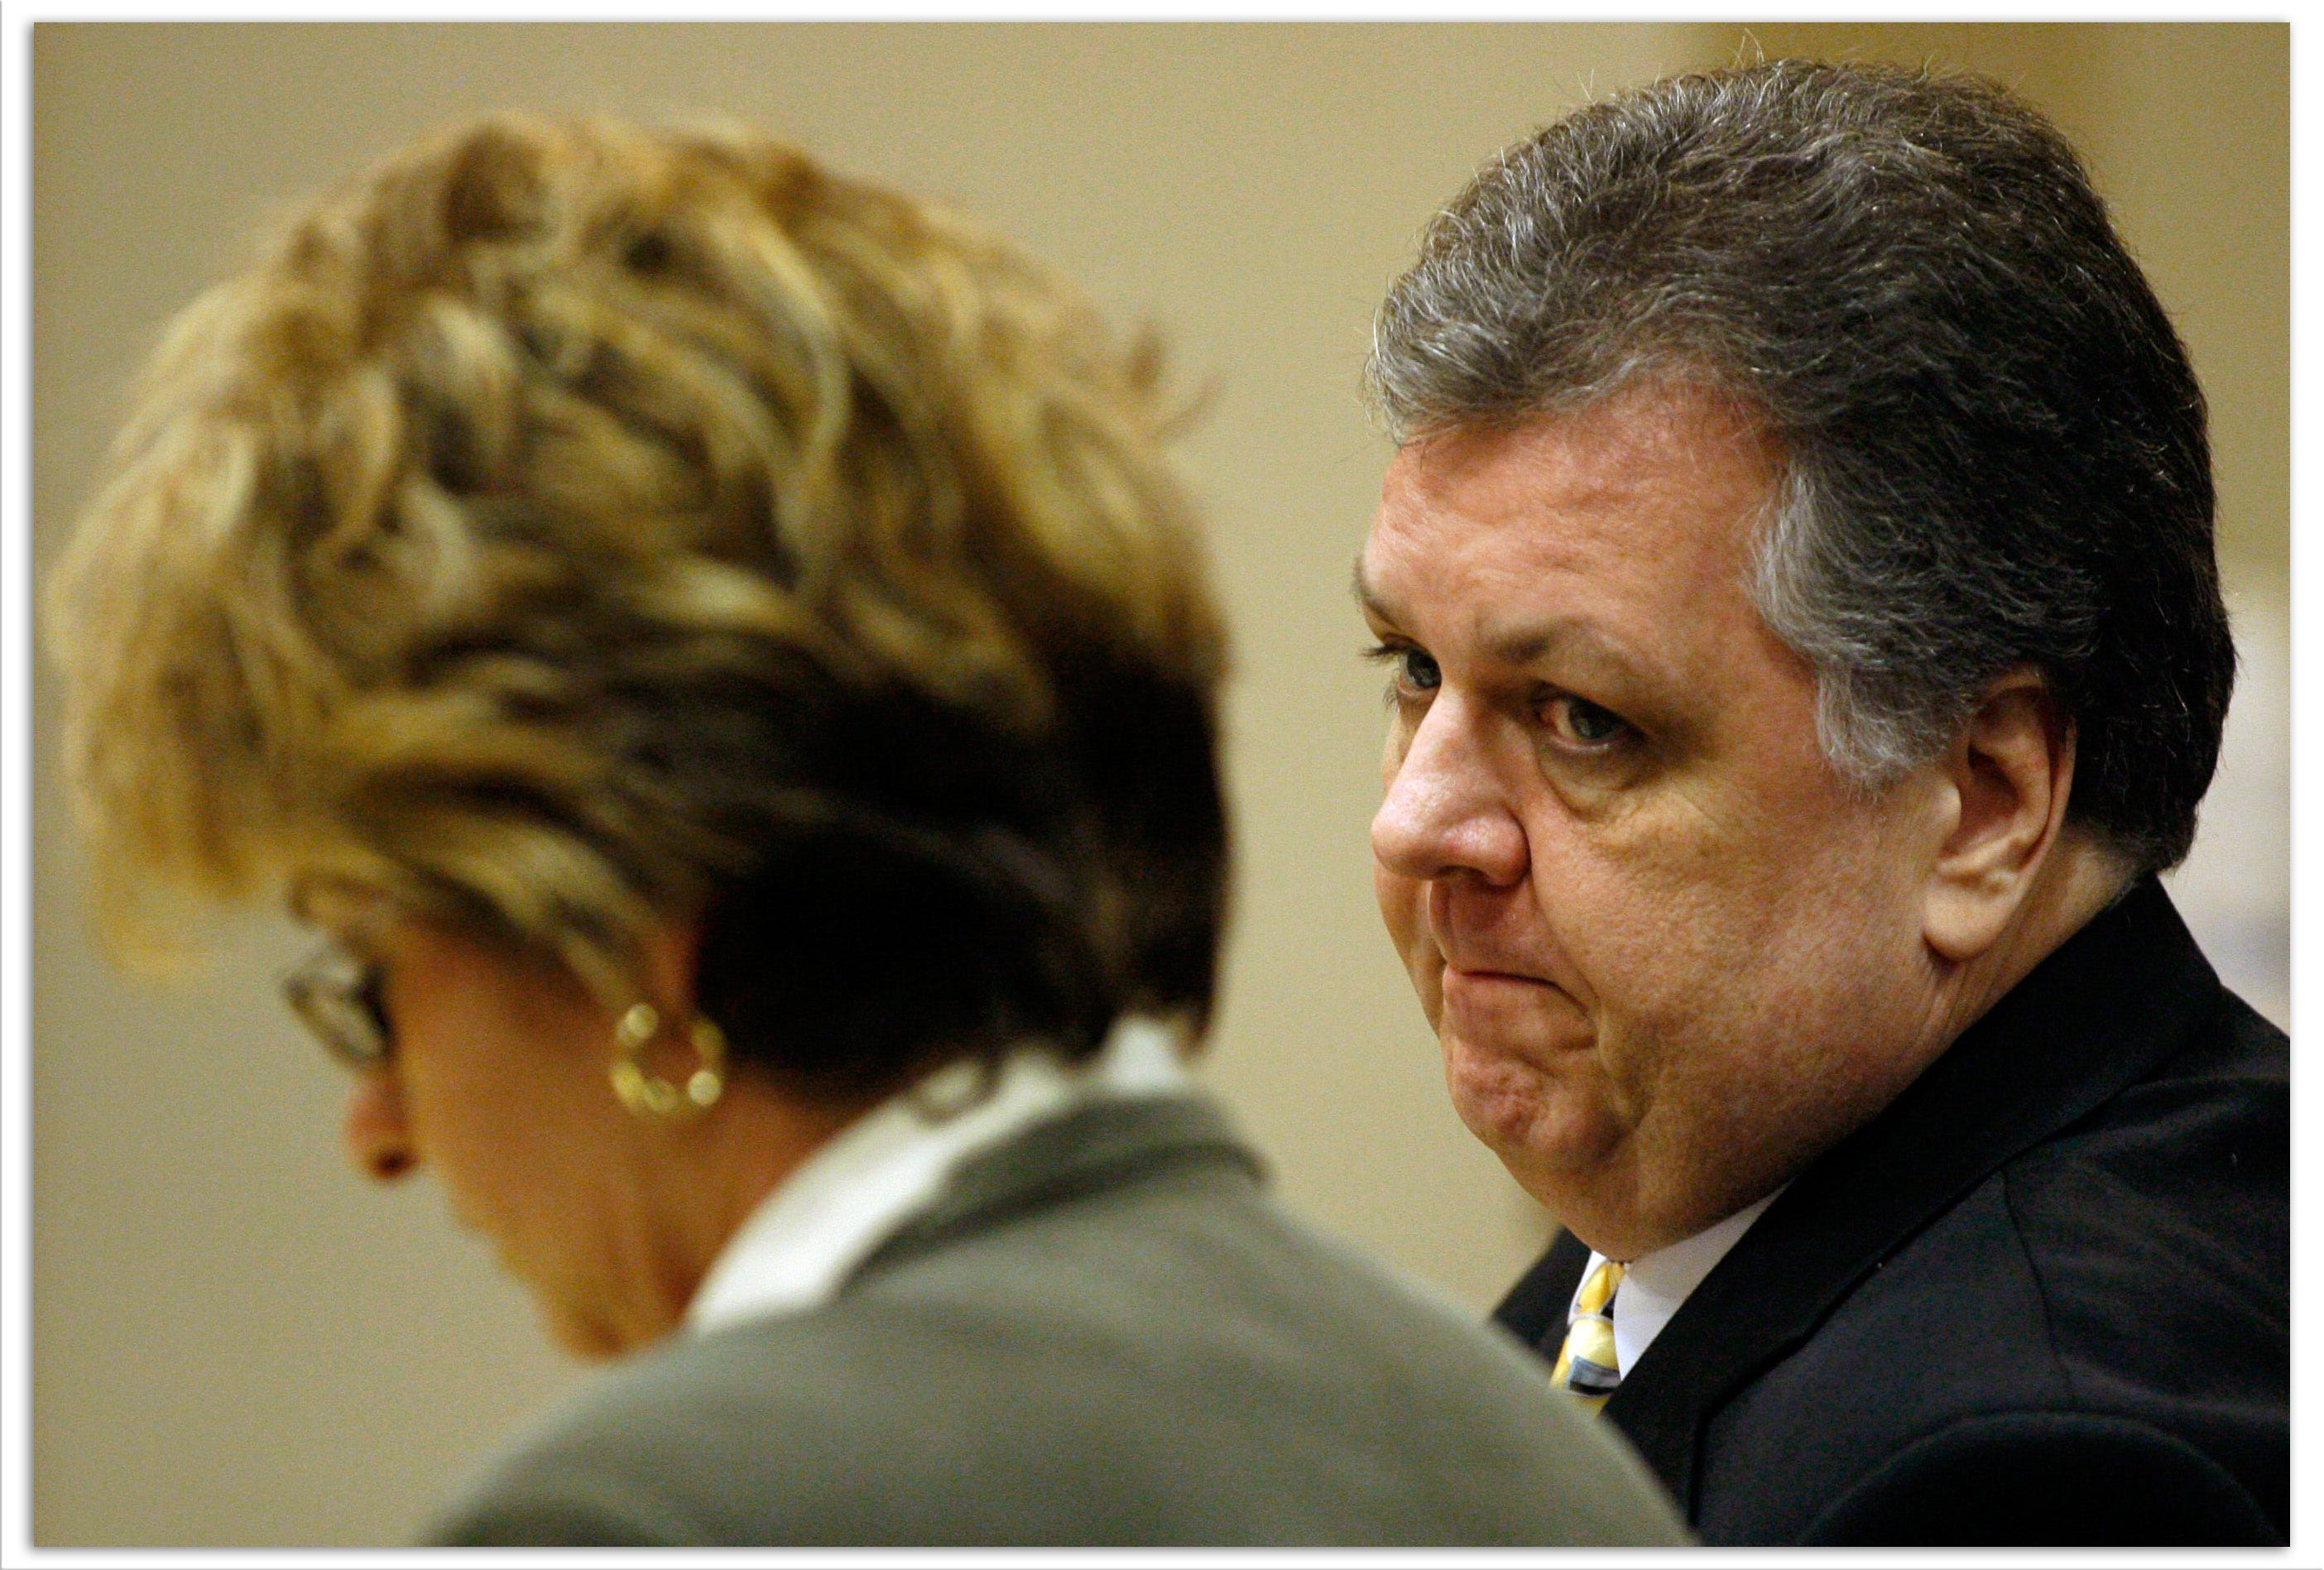 Joseph DeGregorio is seen during his June 2007 trial for sexual battery. John Smith was a key witness in the trial.